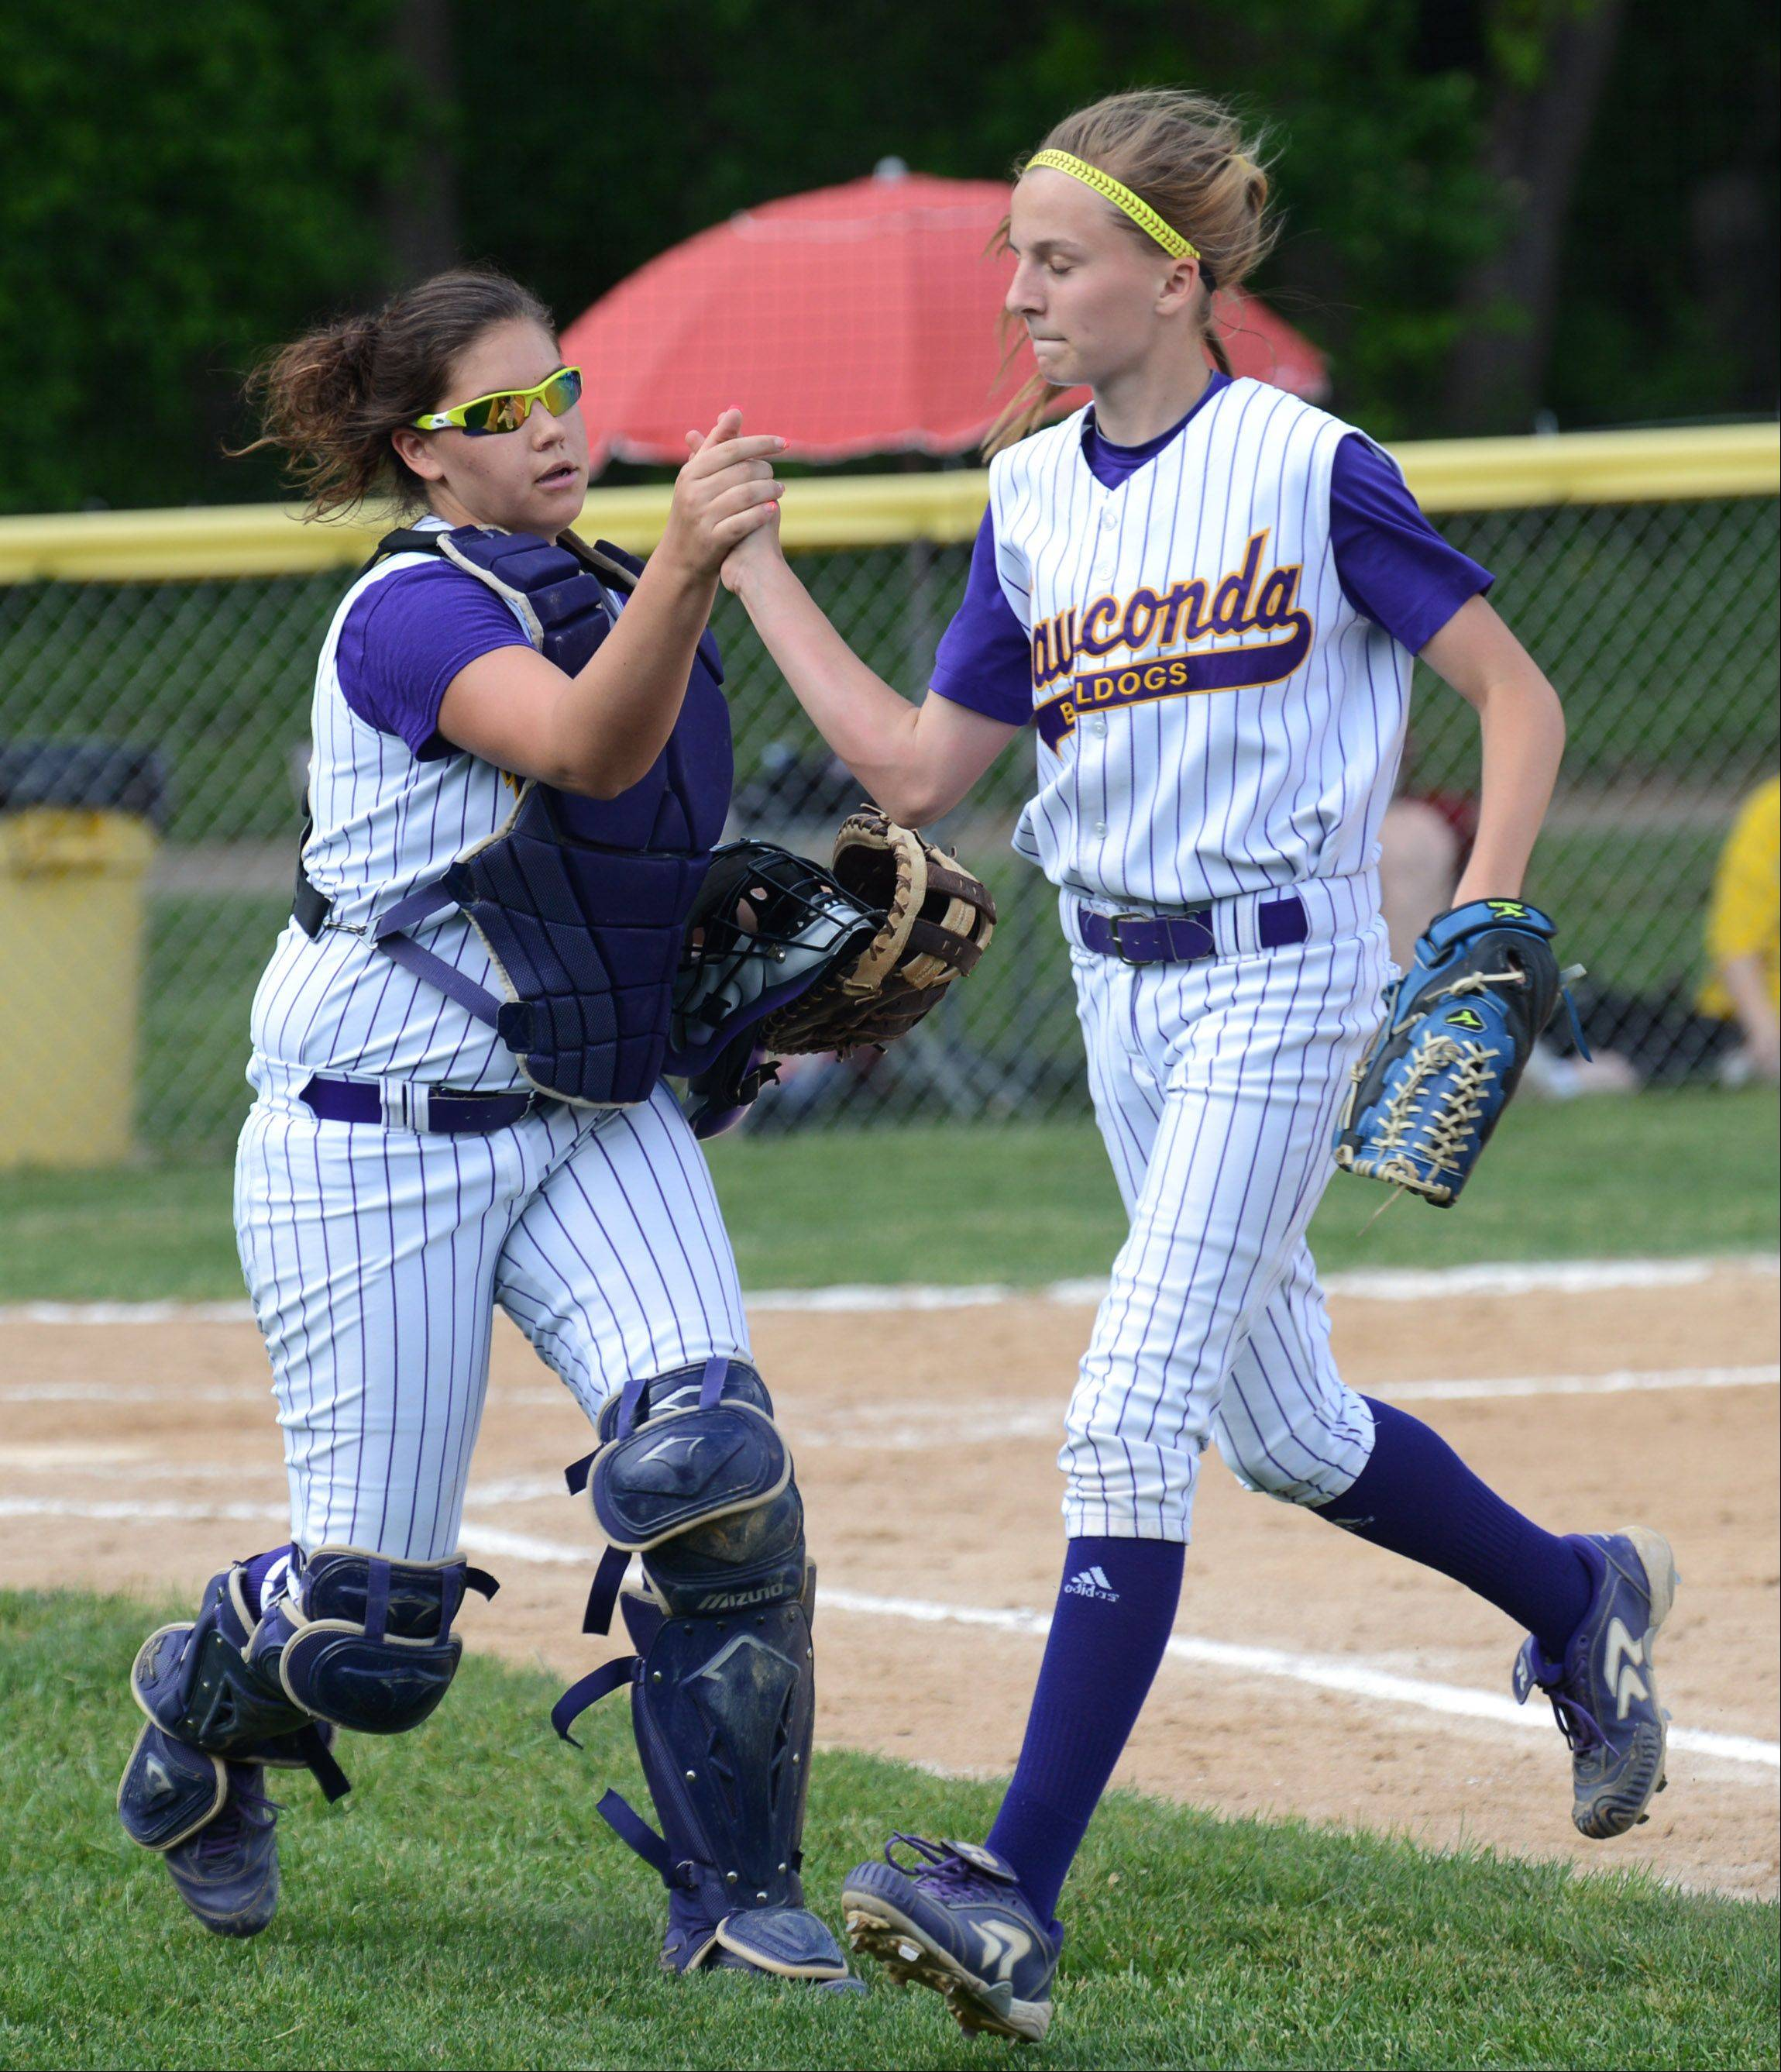 Wauconda catcher Alex Kinnamon, left, gives kudos to pitcher Kayla Wedl after a good inning during Wednesday's Class 3A sectional semifinal game against Antioch in Grayslake.